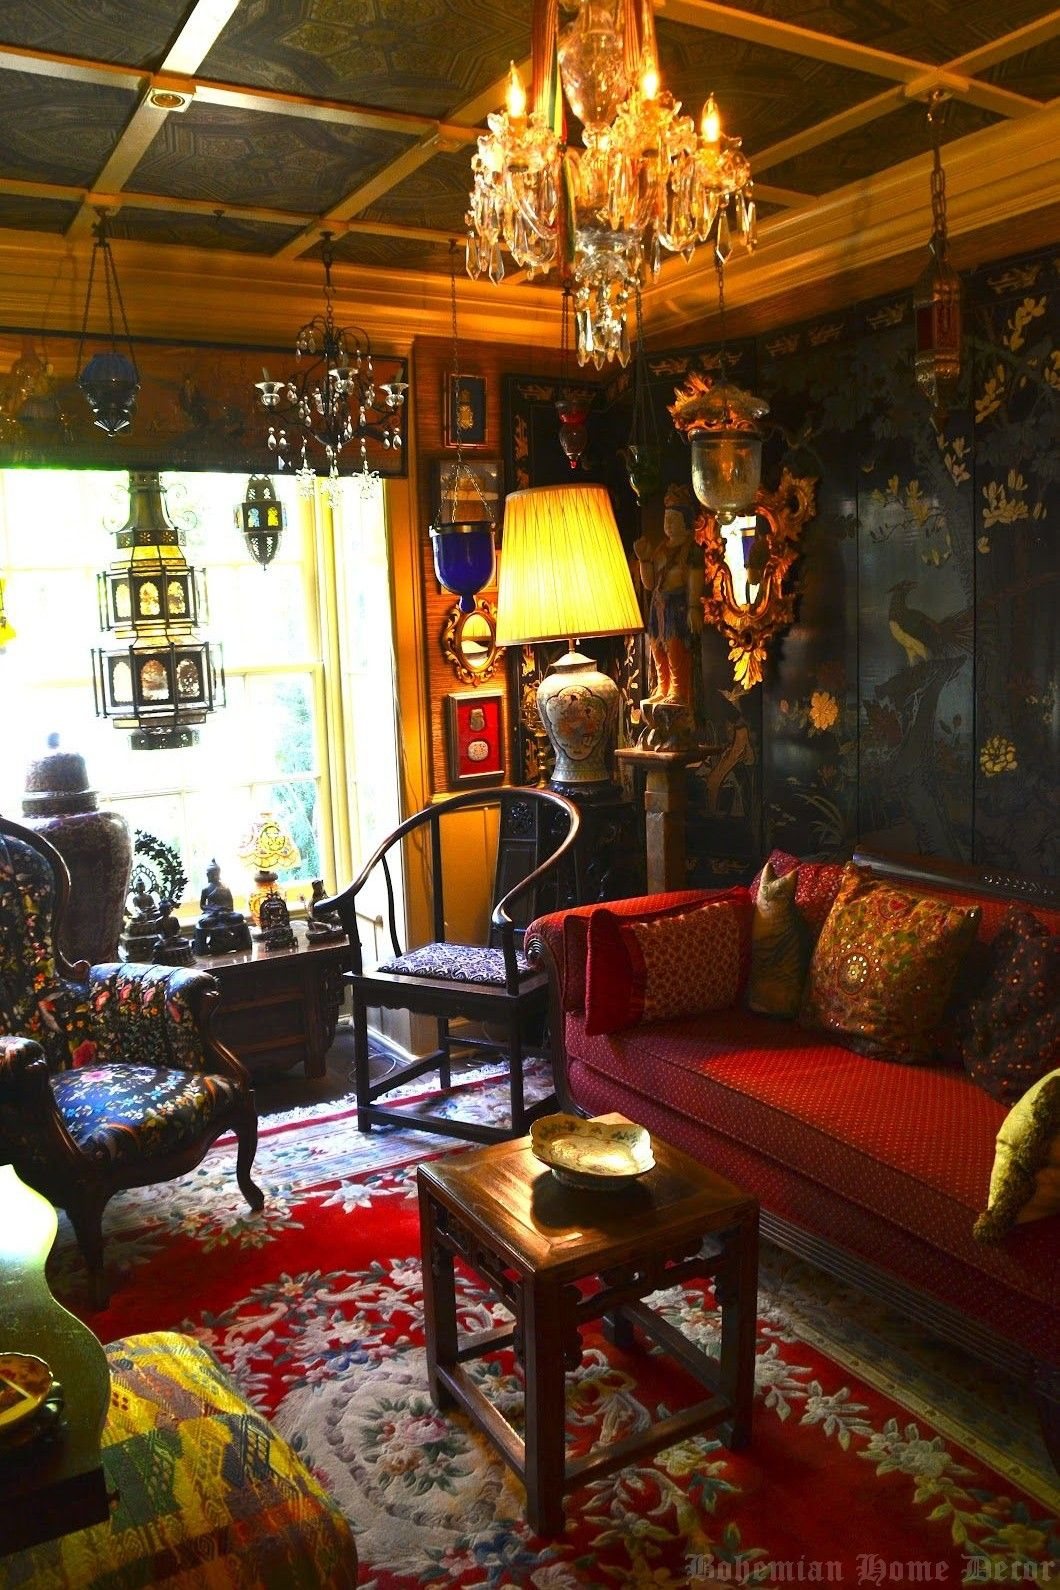 The Bohemian Home Decor Mystery Revealed